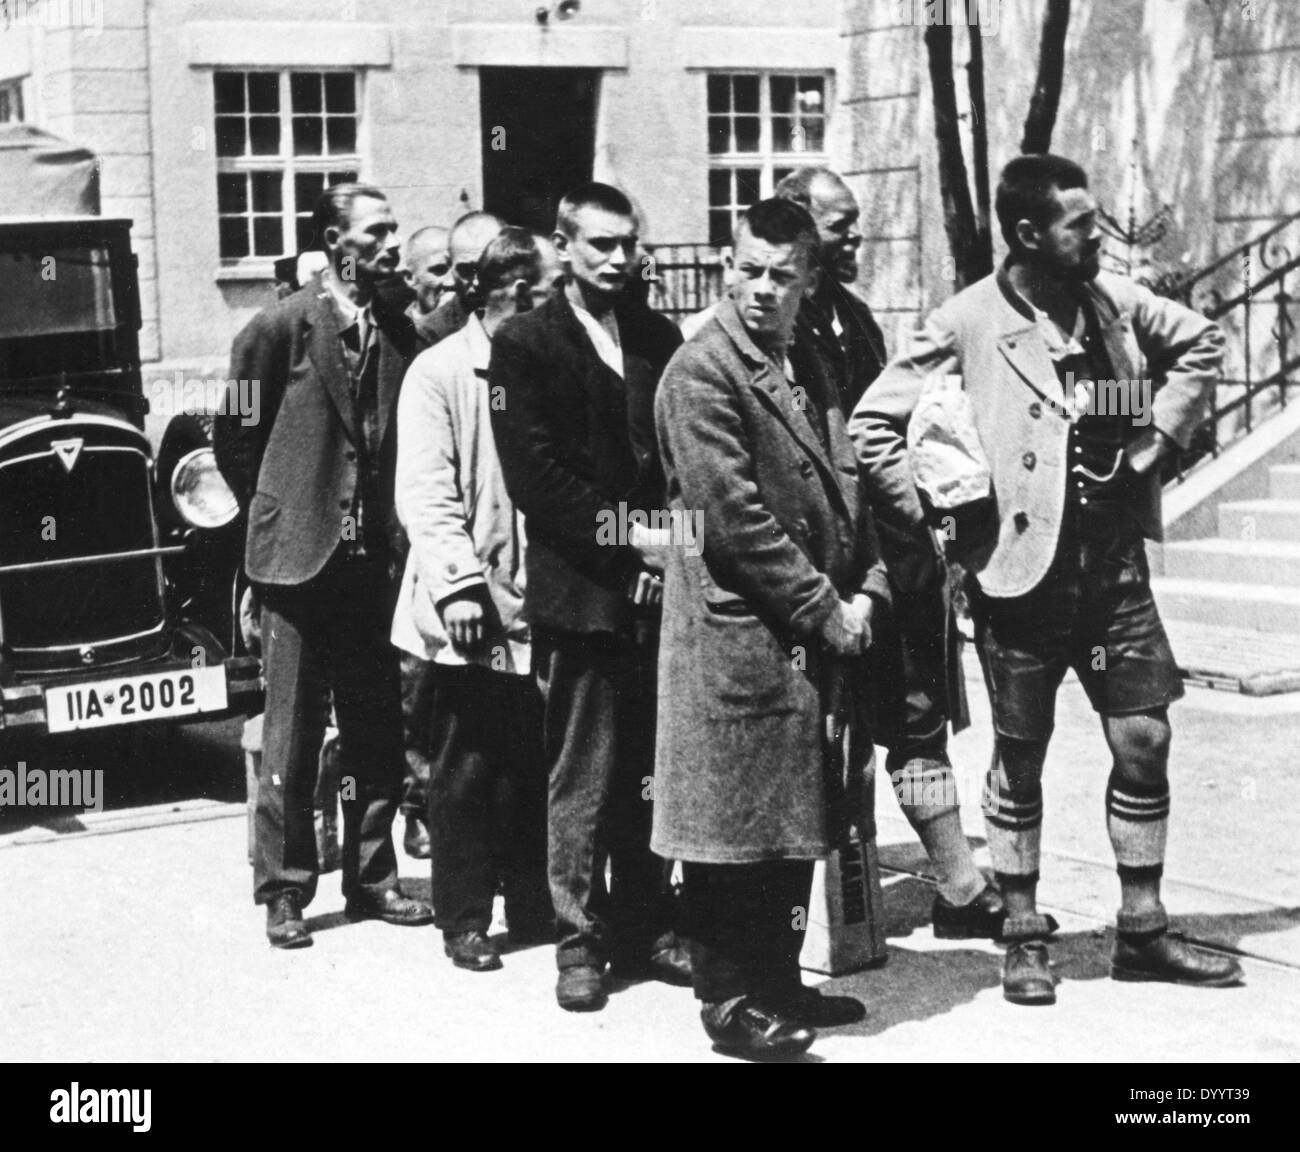 Arrival of detainees at the KZ Dachau, 1933 - Stock Image